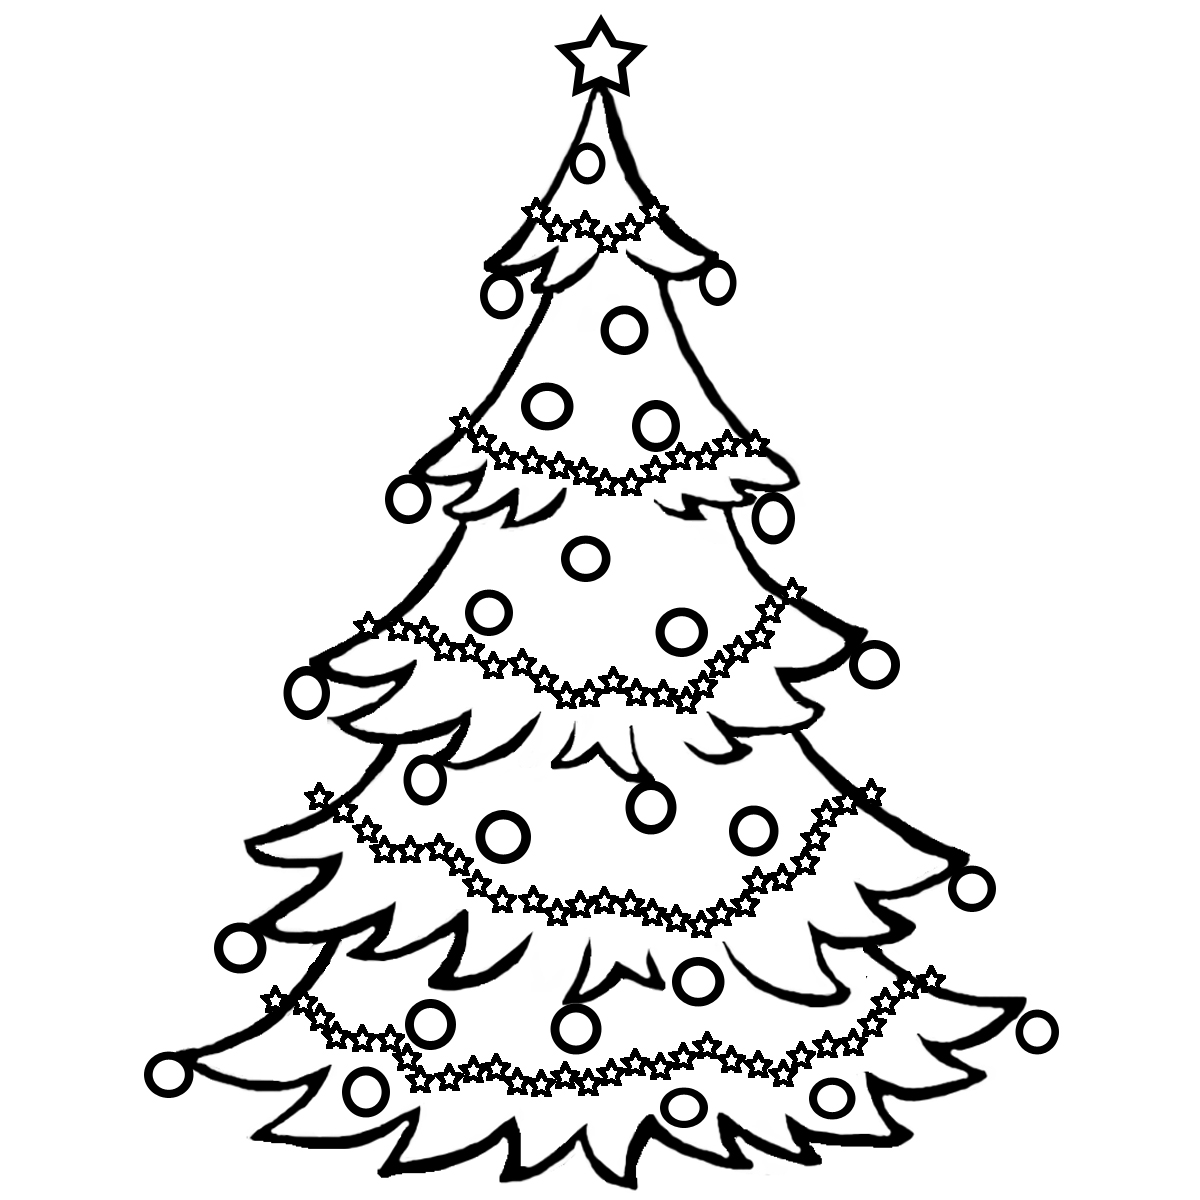 Christmas tree drawing clipart best for Best tree drawing